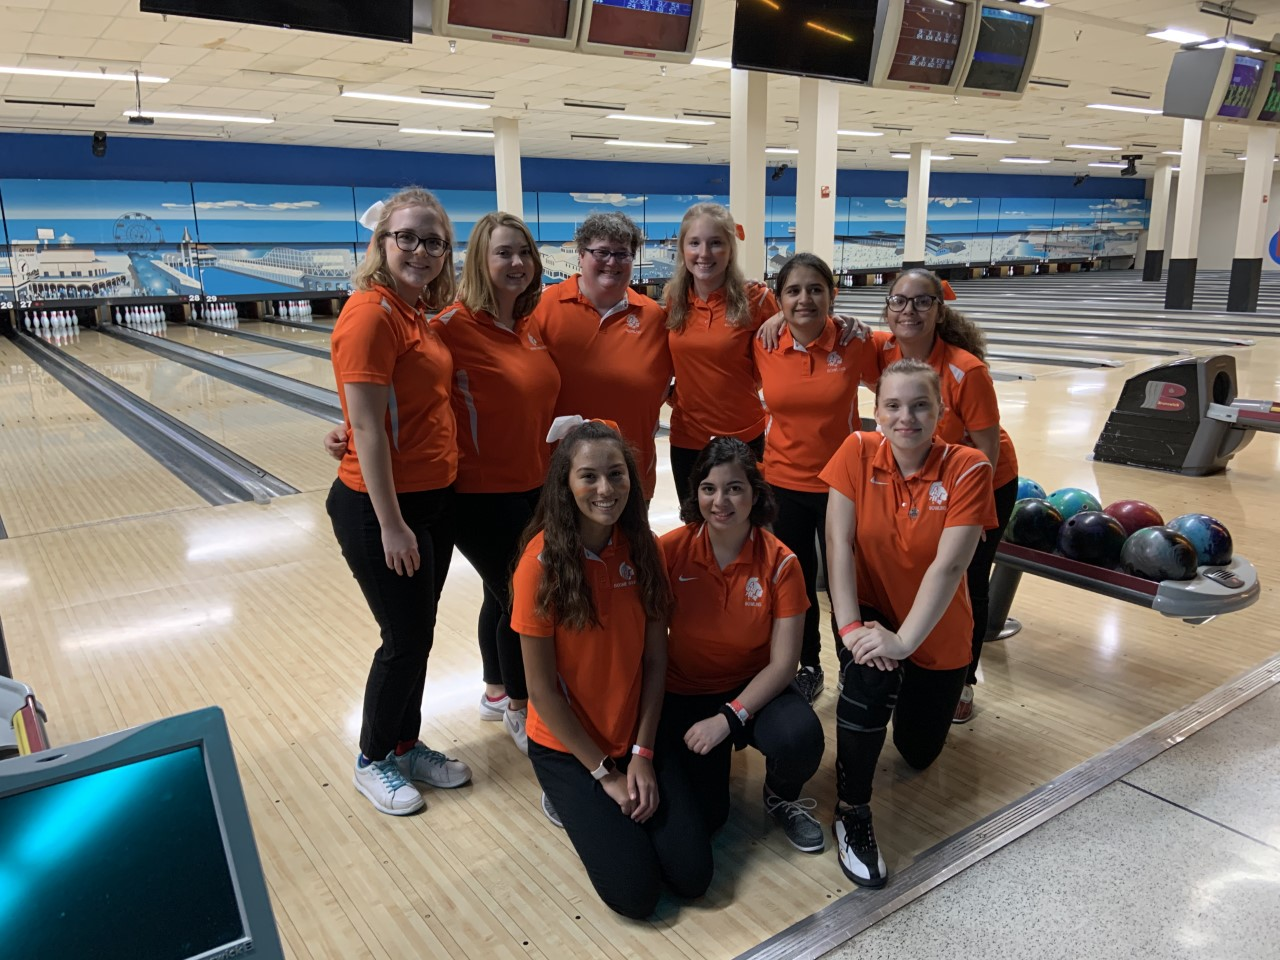 Girls Bowling Moves On To States! Placing 2nd at District Tournament